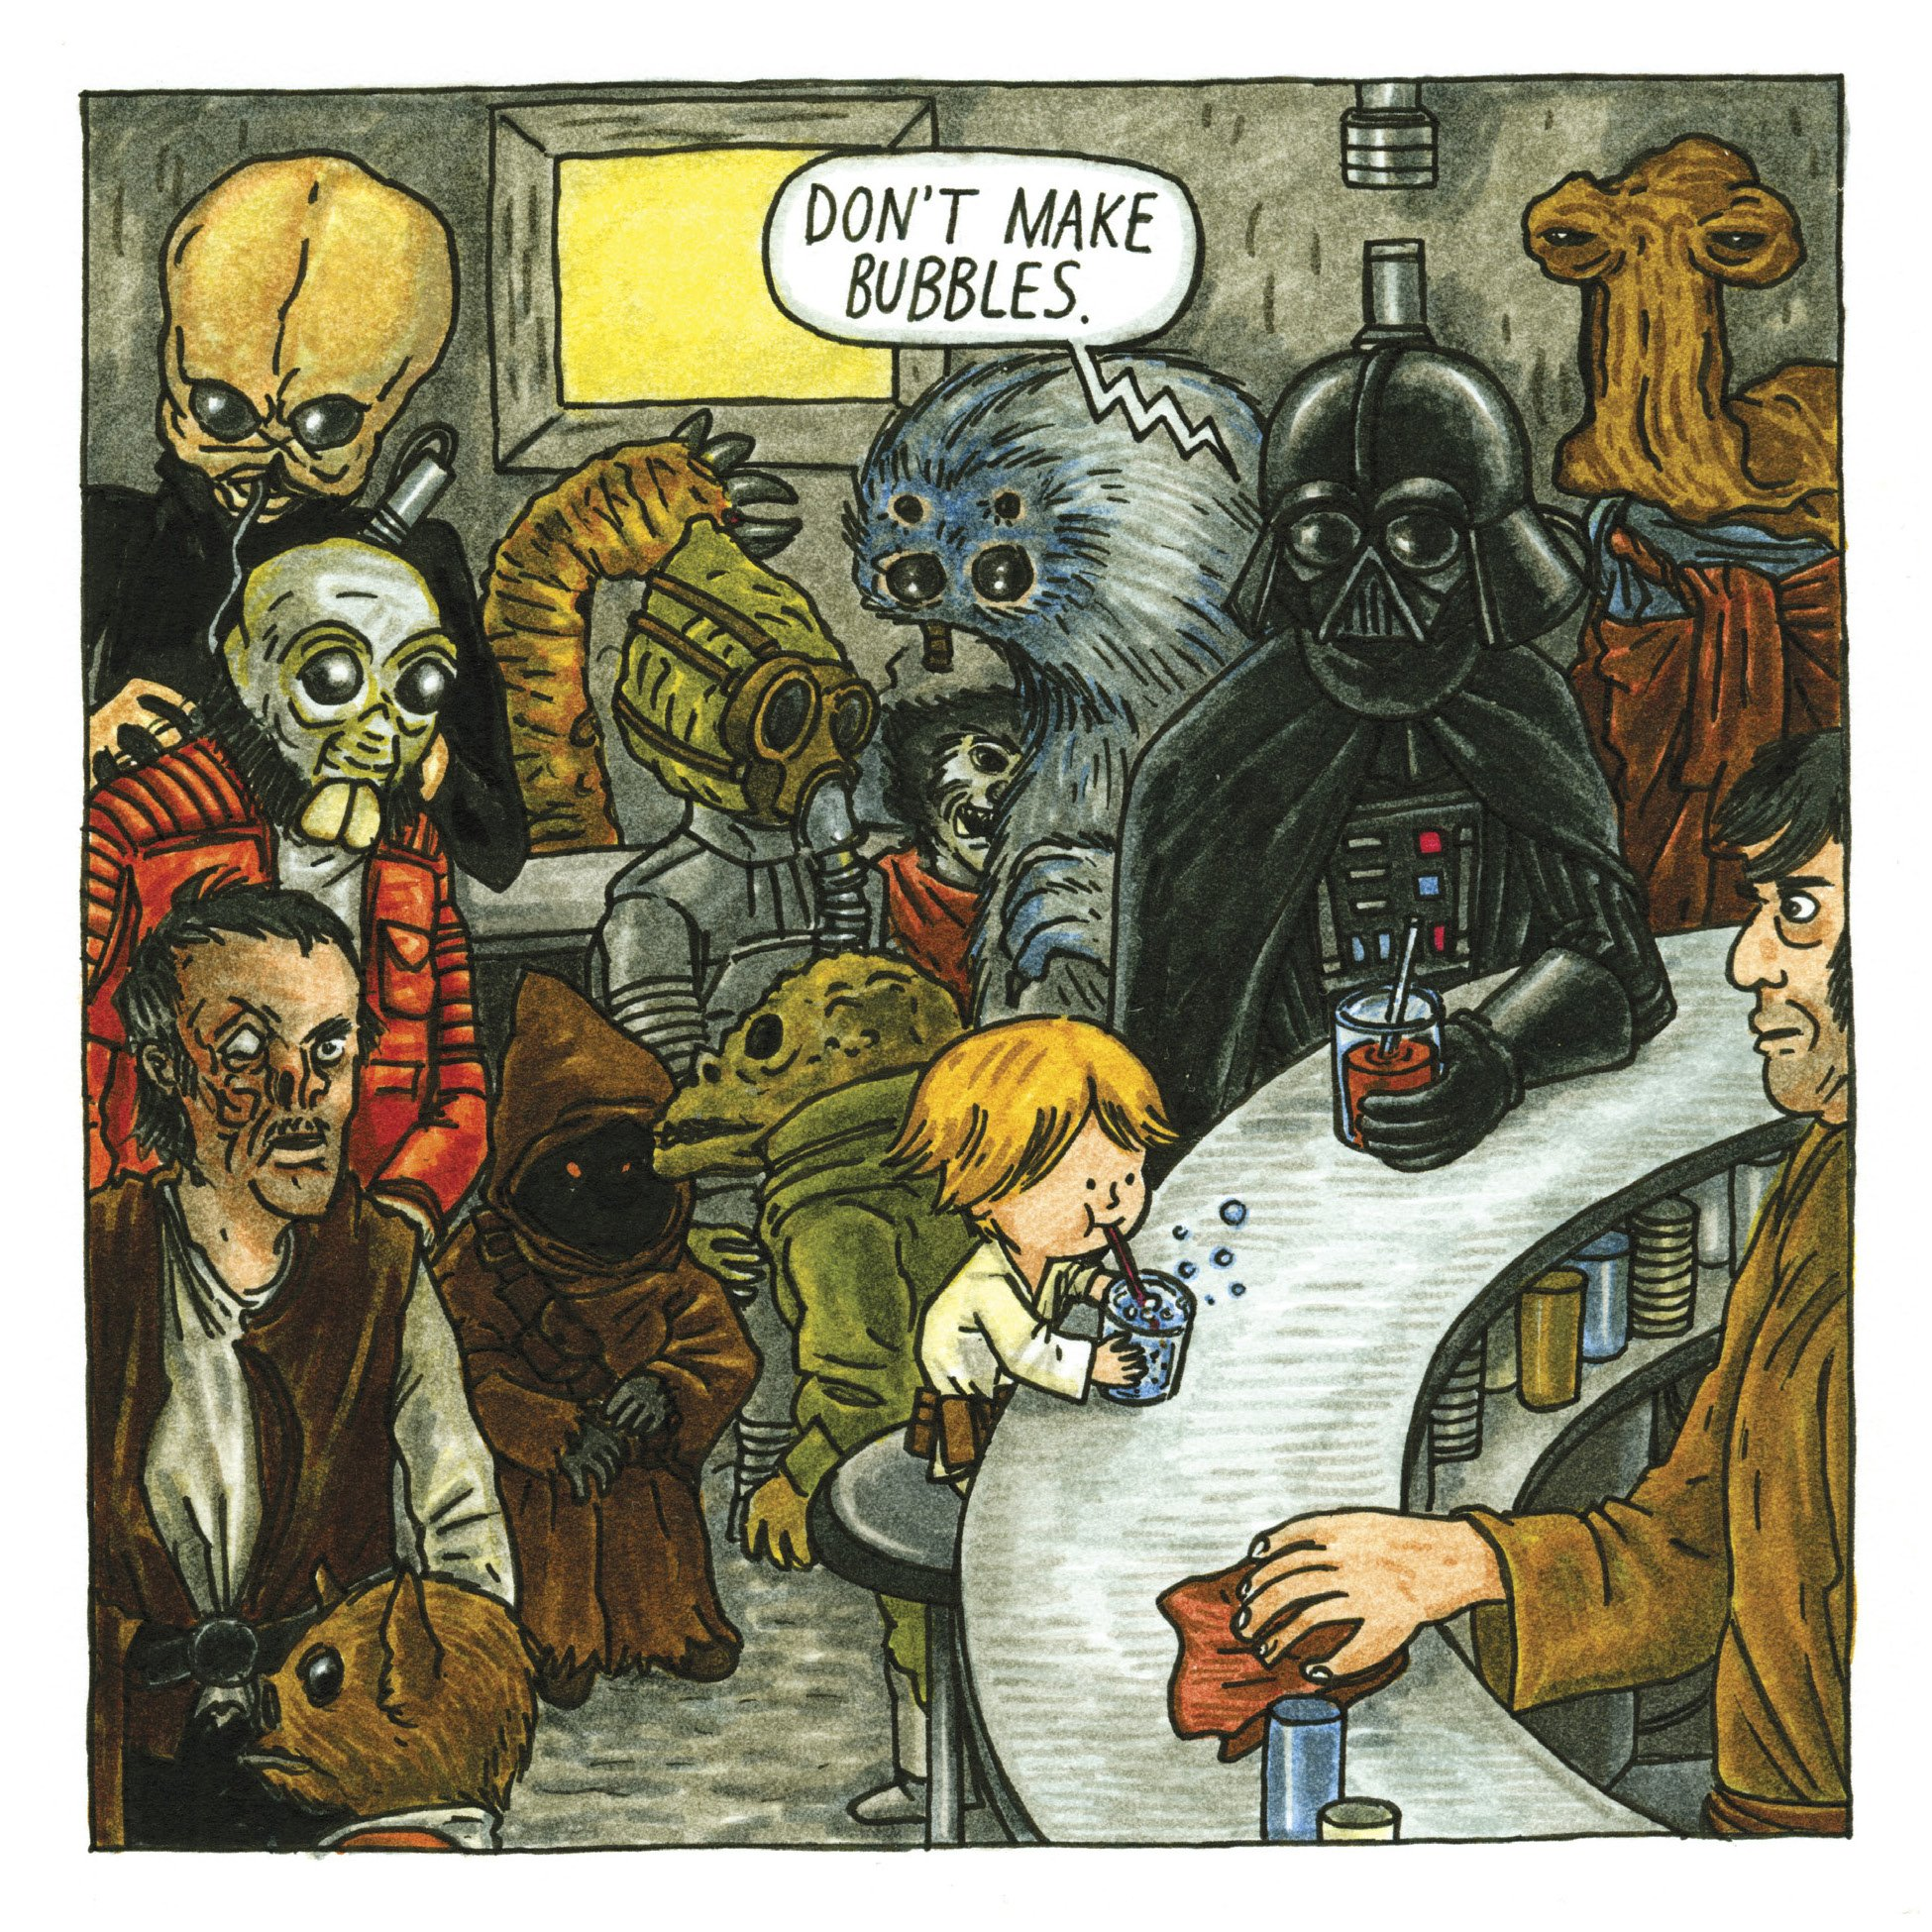 Jeffrey Brown STAR WARS comic book